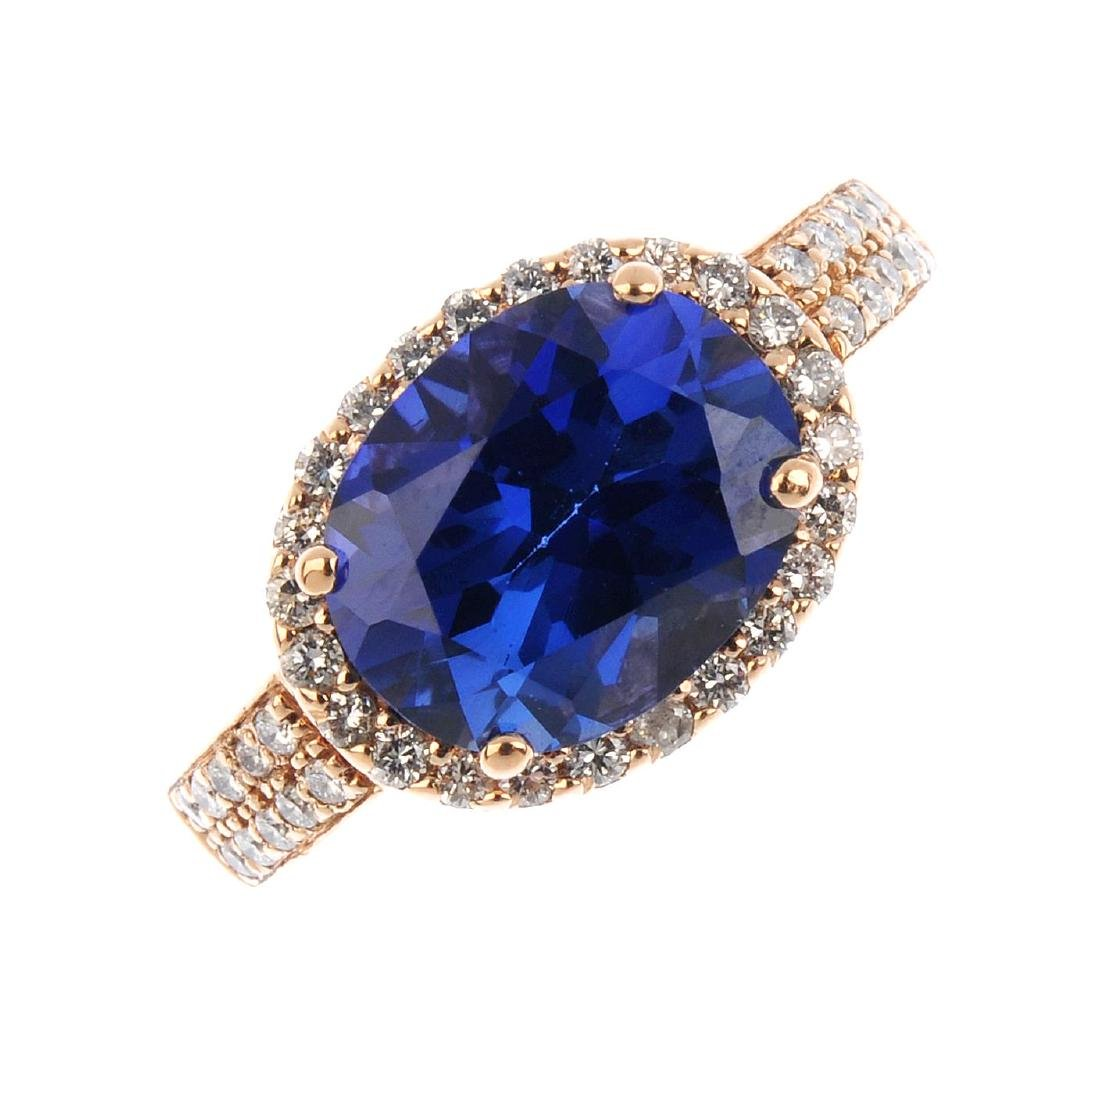 A synthetic sapphire and diamond ring. The oval-shape